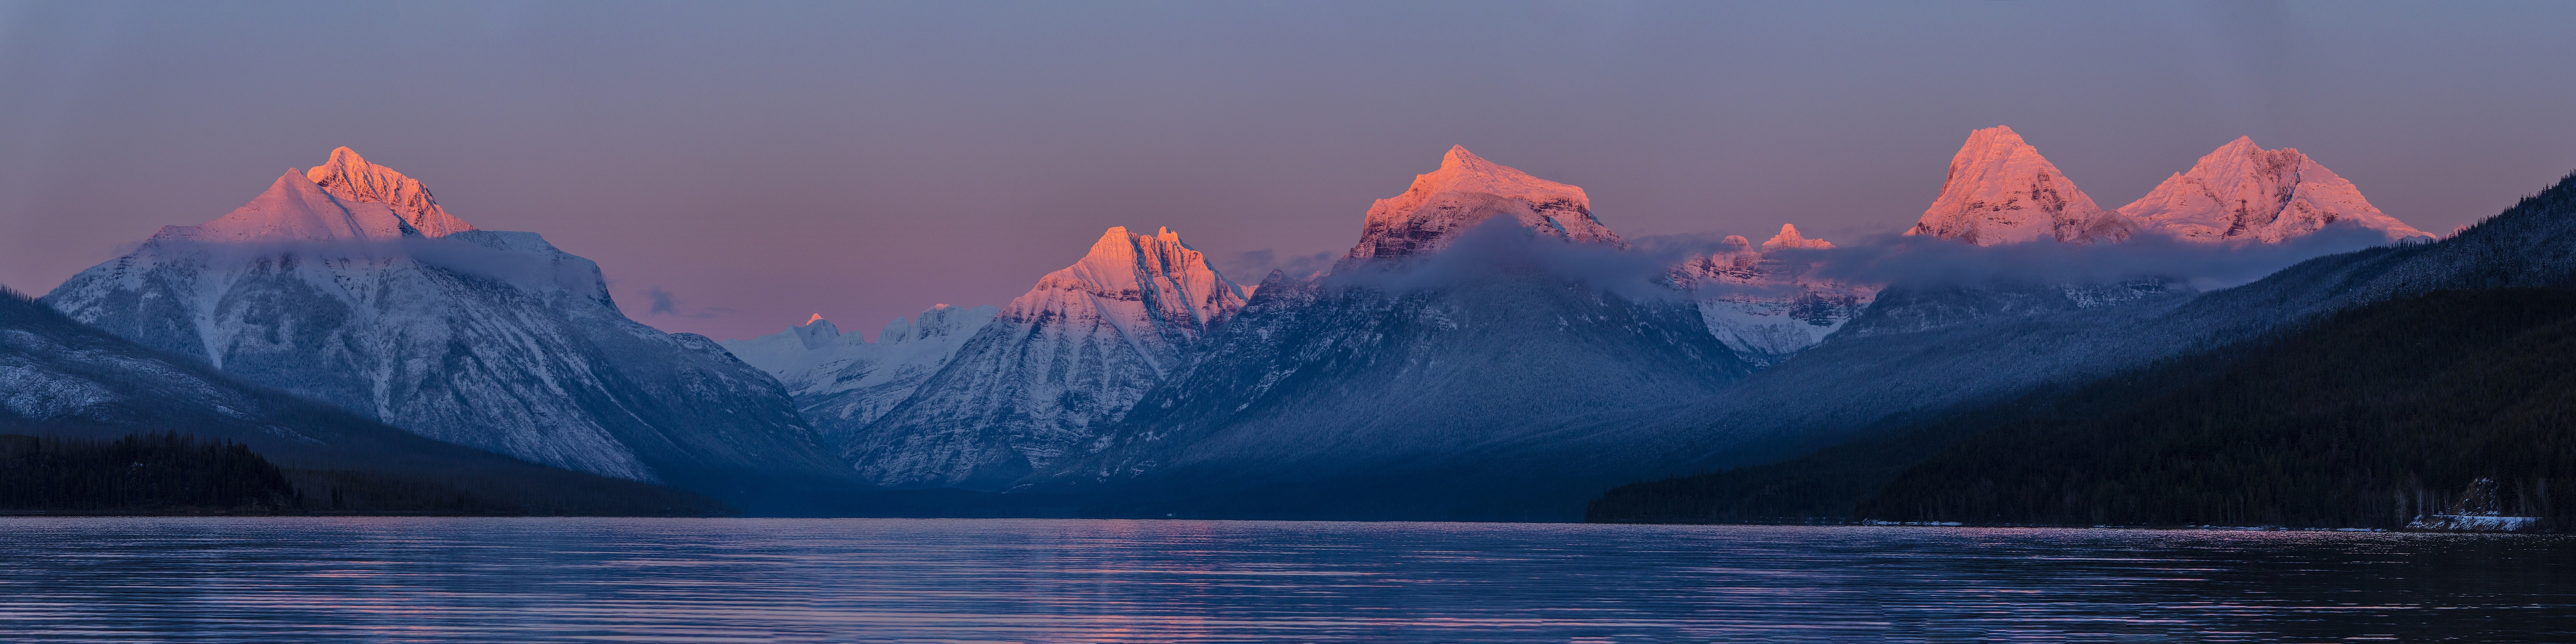 Body Of Water And Mountains Wallpaper Free Stock Photo